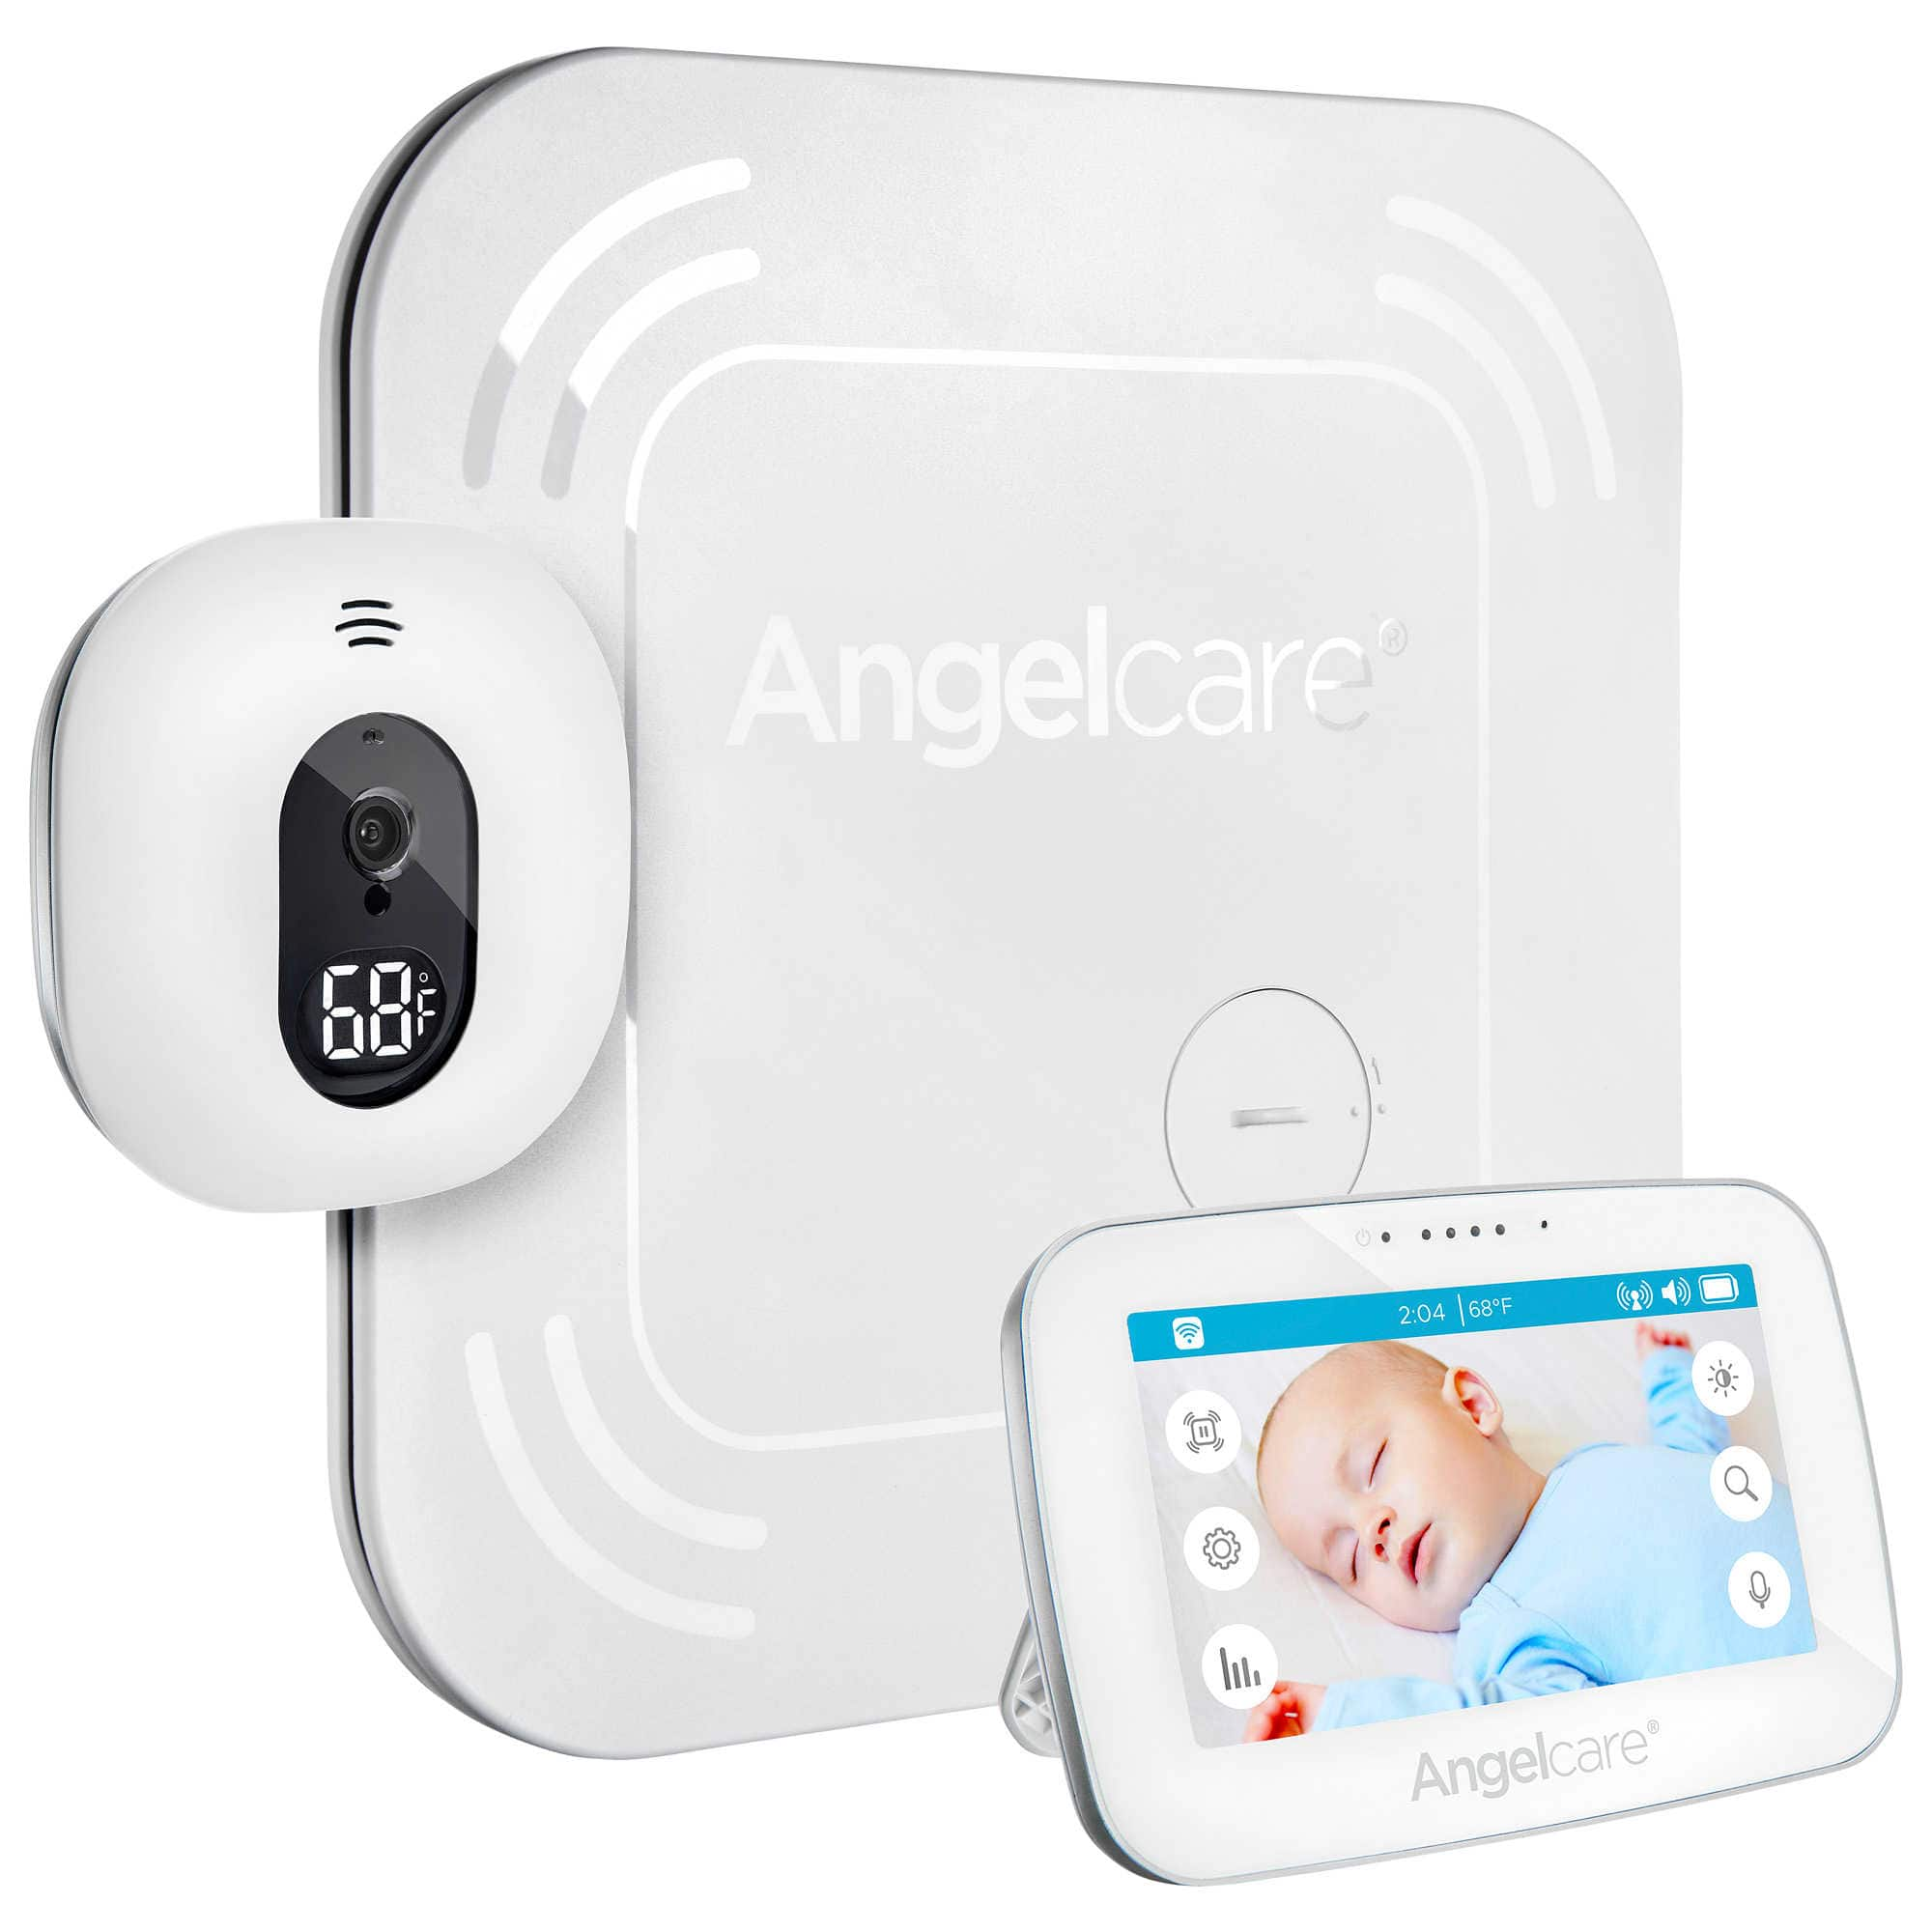 Angelcare Wireless Movement, Video and Sound Monitor AC417/AC517 - $91.99 or $99.99 + FS @ BBB